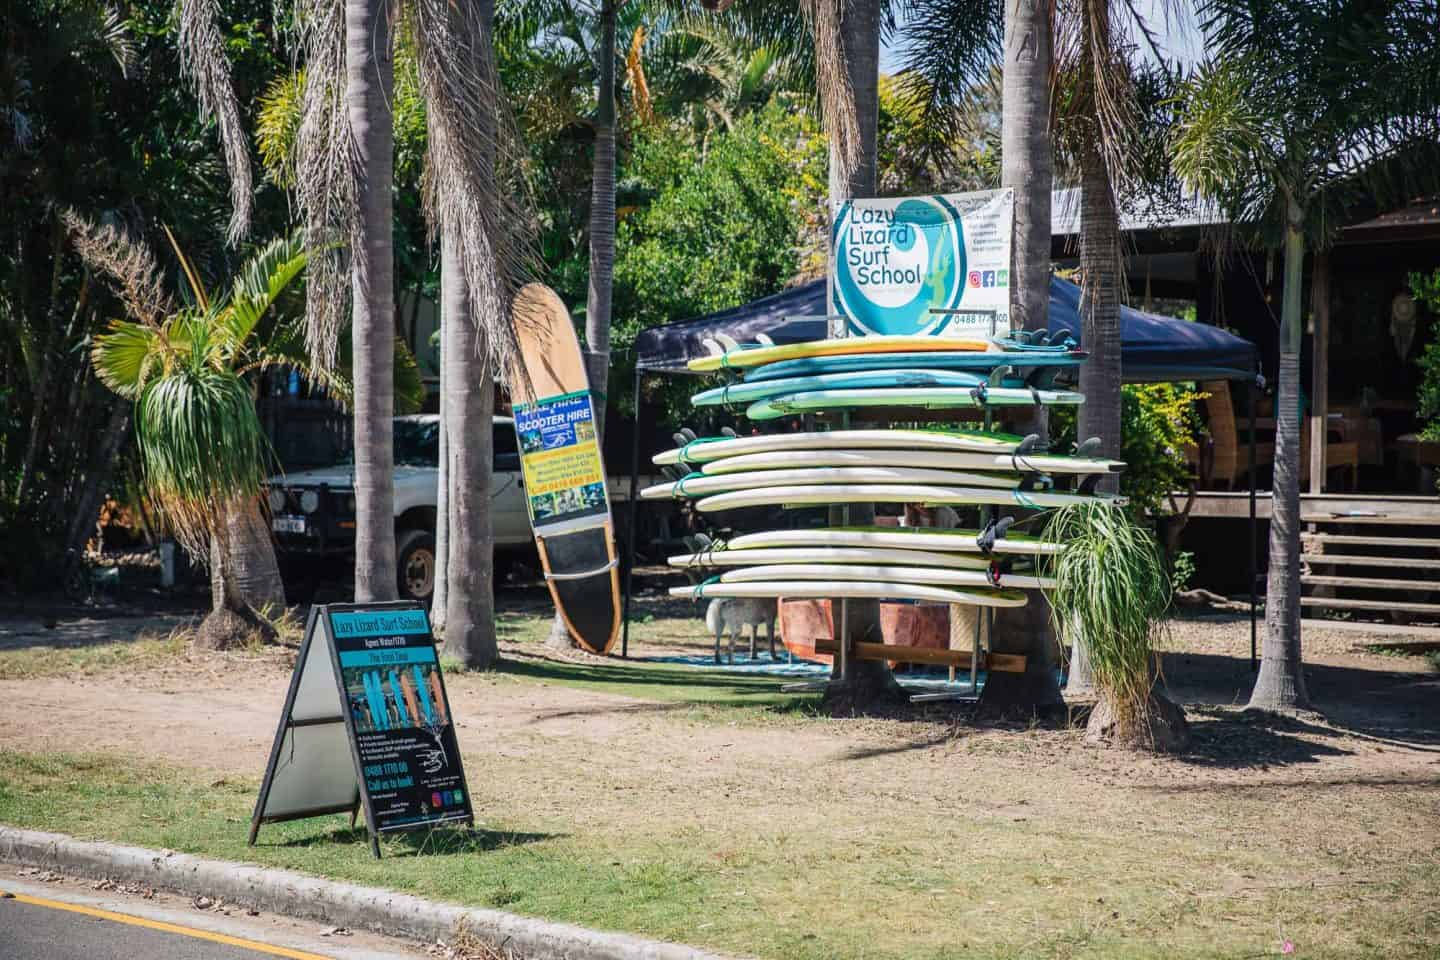 agnes water, agnes waters, things to do in agnes waters, hings to do in agnes water, surfing agnes water, seventeen seventy queensland, seventeen seventy camping, seventeen seventy australia, seventeen seventy, agnes waters things to do, agnes waters map, agnes waters caravan park, agnes waters beach, agnes waters accommodation, agnes water surfing, agnes water surf cam, agnes water queensland, agnes water qld, agnes water caravan park, agnes water camping, agnes water beach, camping ground agnes water